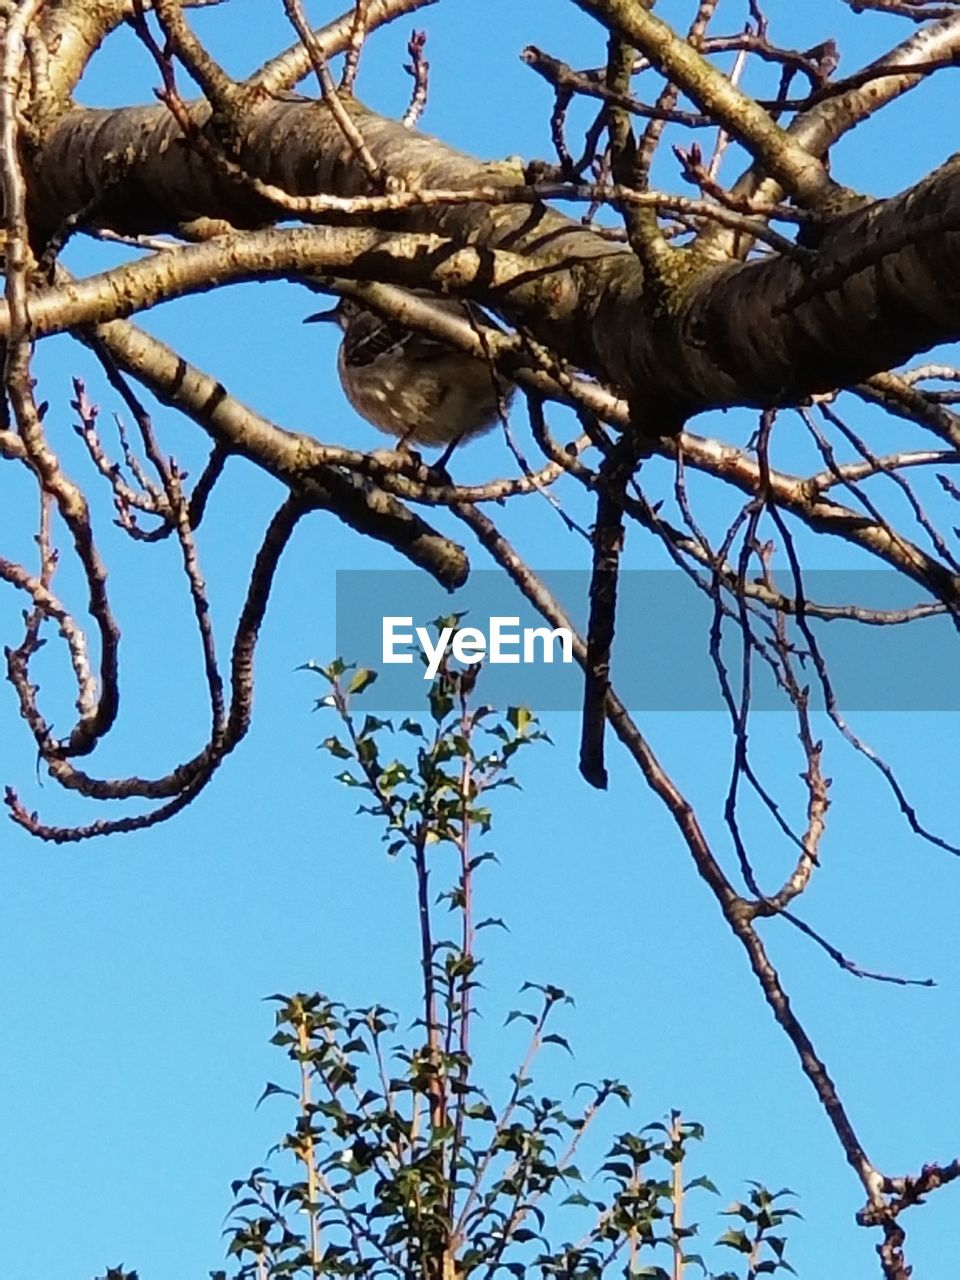 low angle view, tree, branch, clear sky, blue, day, outdoors, nature, no people, sky, growth, bare tree, sunlight, dead plant, beauty in nature, close-up